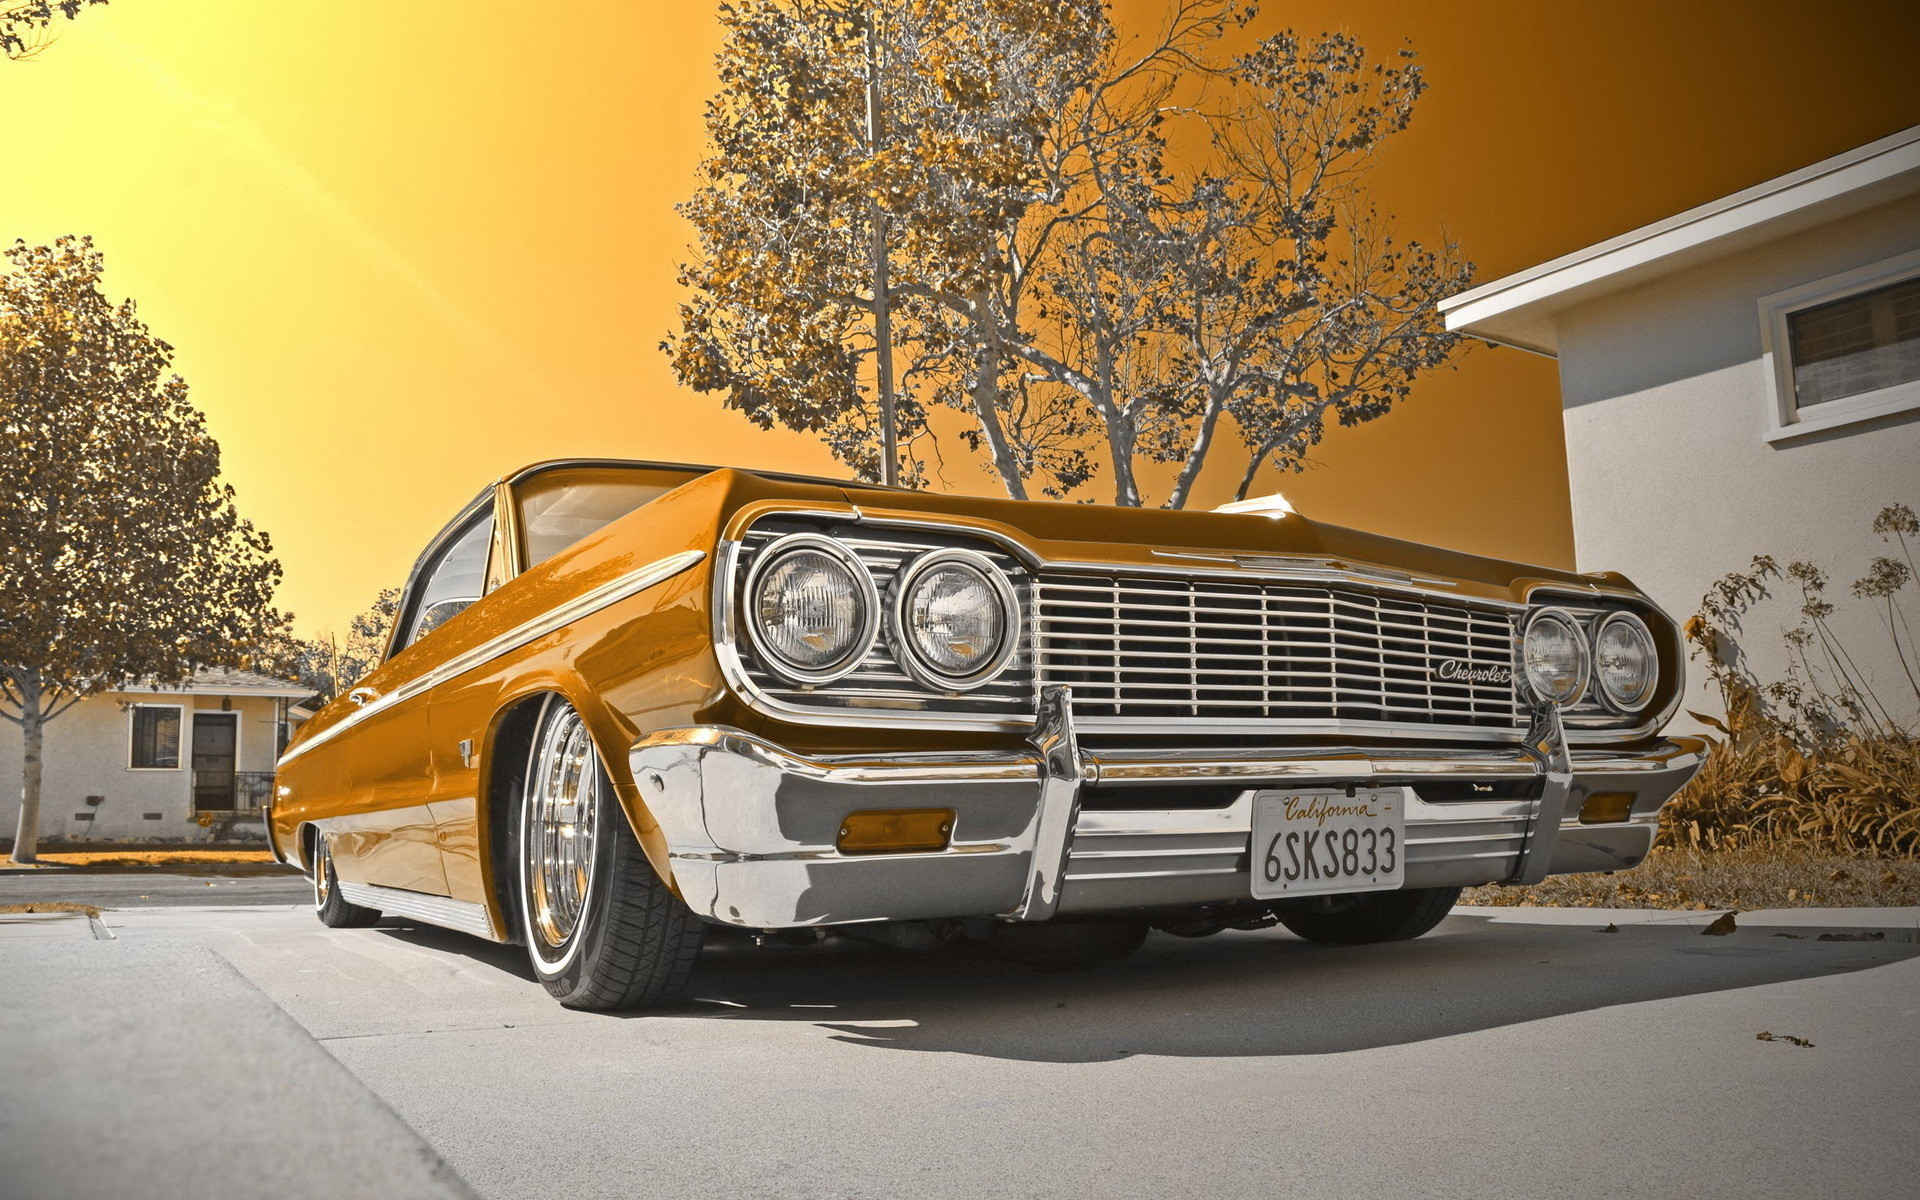 Res: 1920x1200, 1964 Chevy impala lowrider muscle cars tuning wallpaper